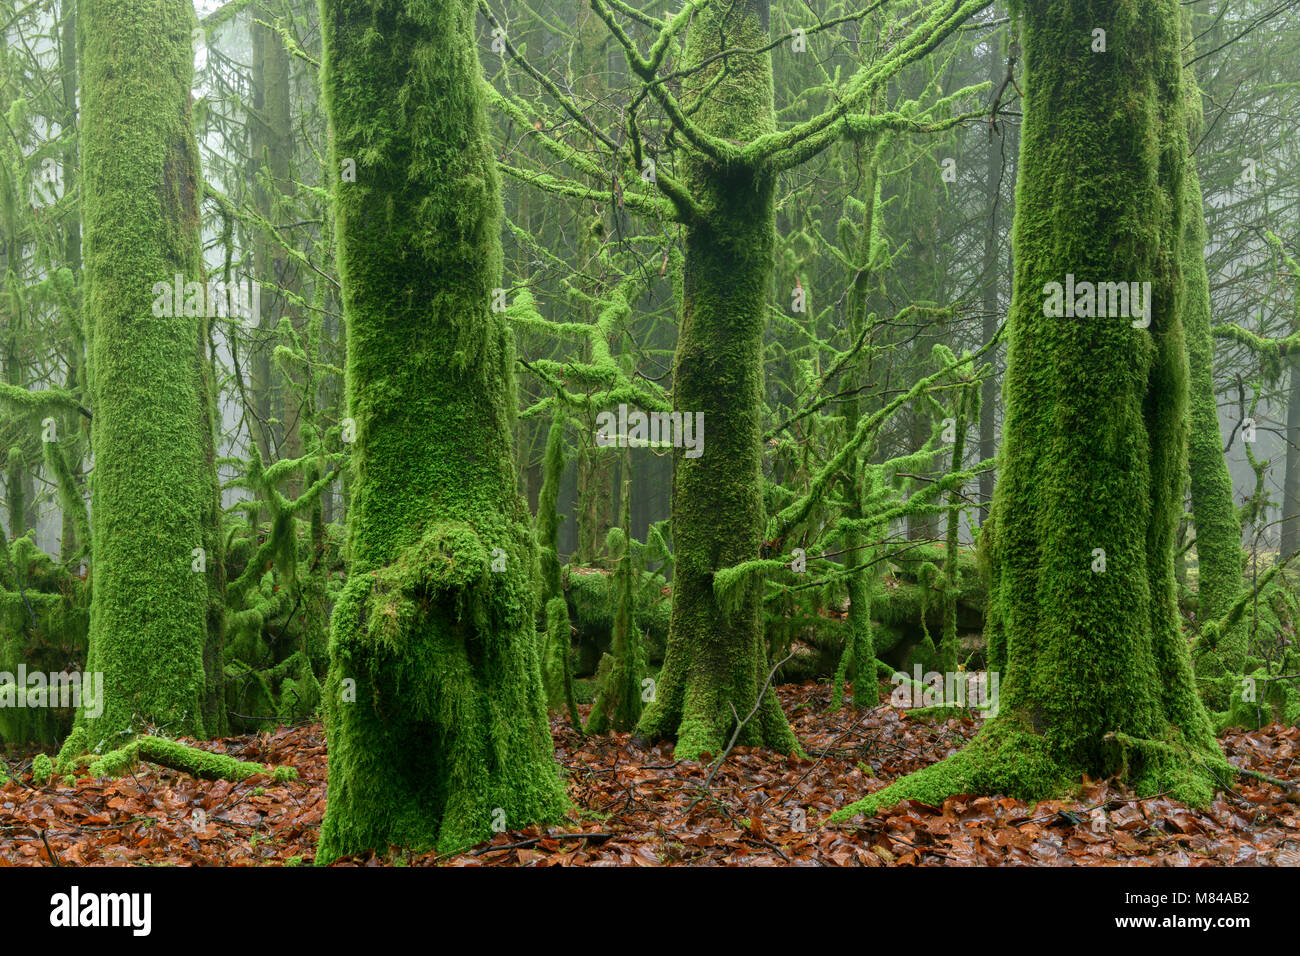 Moss covered trees in foggy Bellever Wood, Dartmoor, Devon, England. Winter (January) 2018. - Stock Image